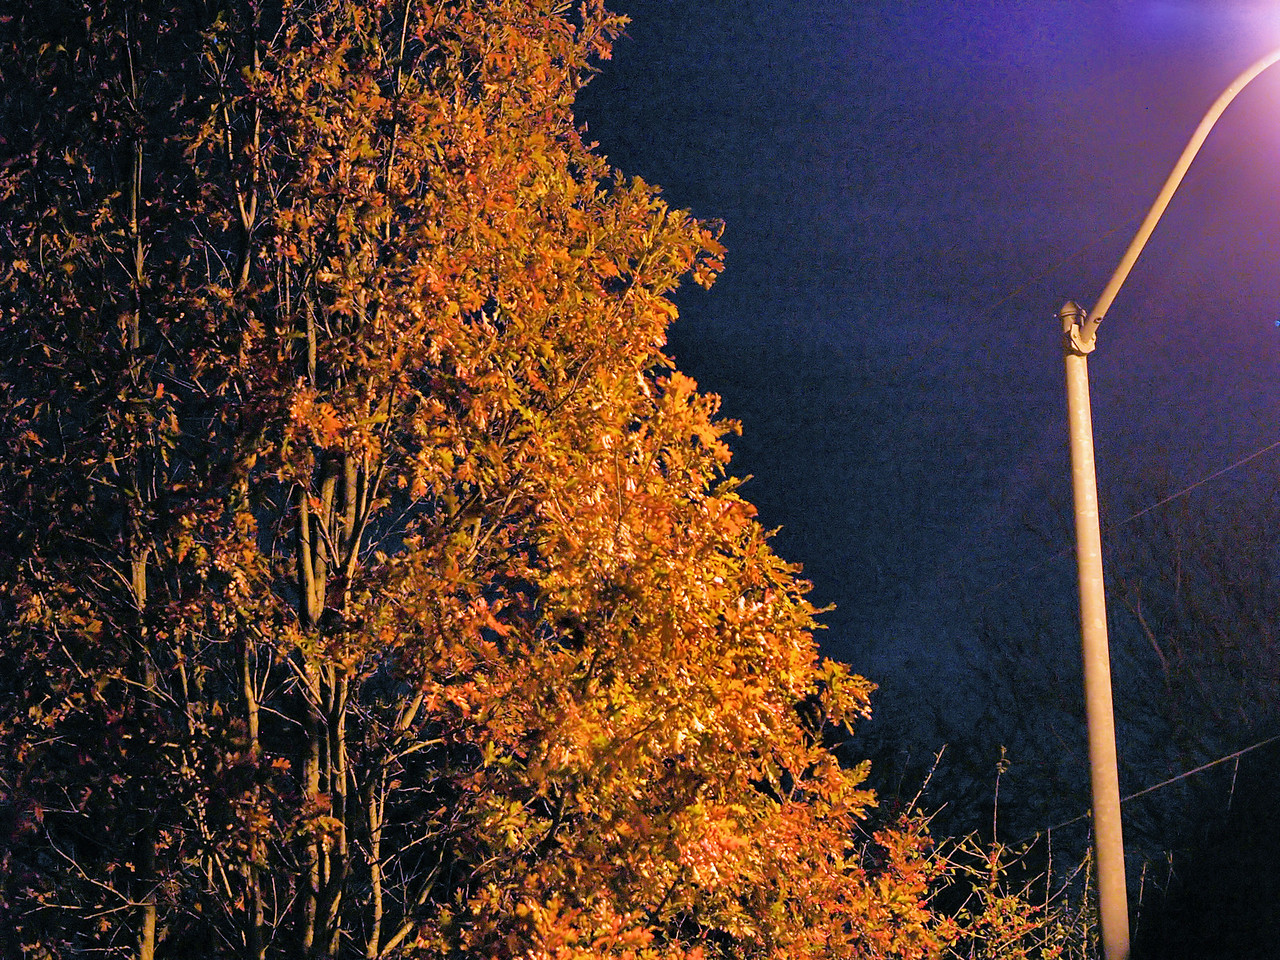 OLYMPUS DIGITAL CAMERA--Red oak tree illuminated by the street light.  The leaves will soon be gone, ready to be raked and bagged.